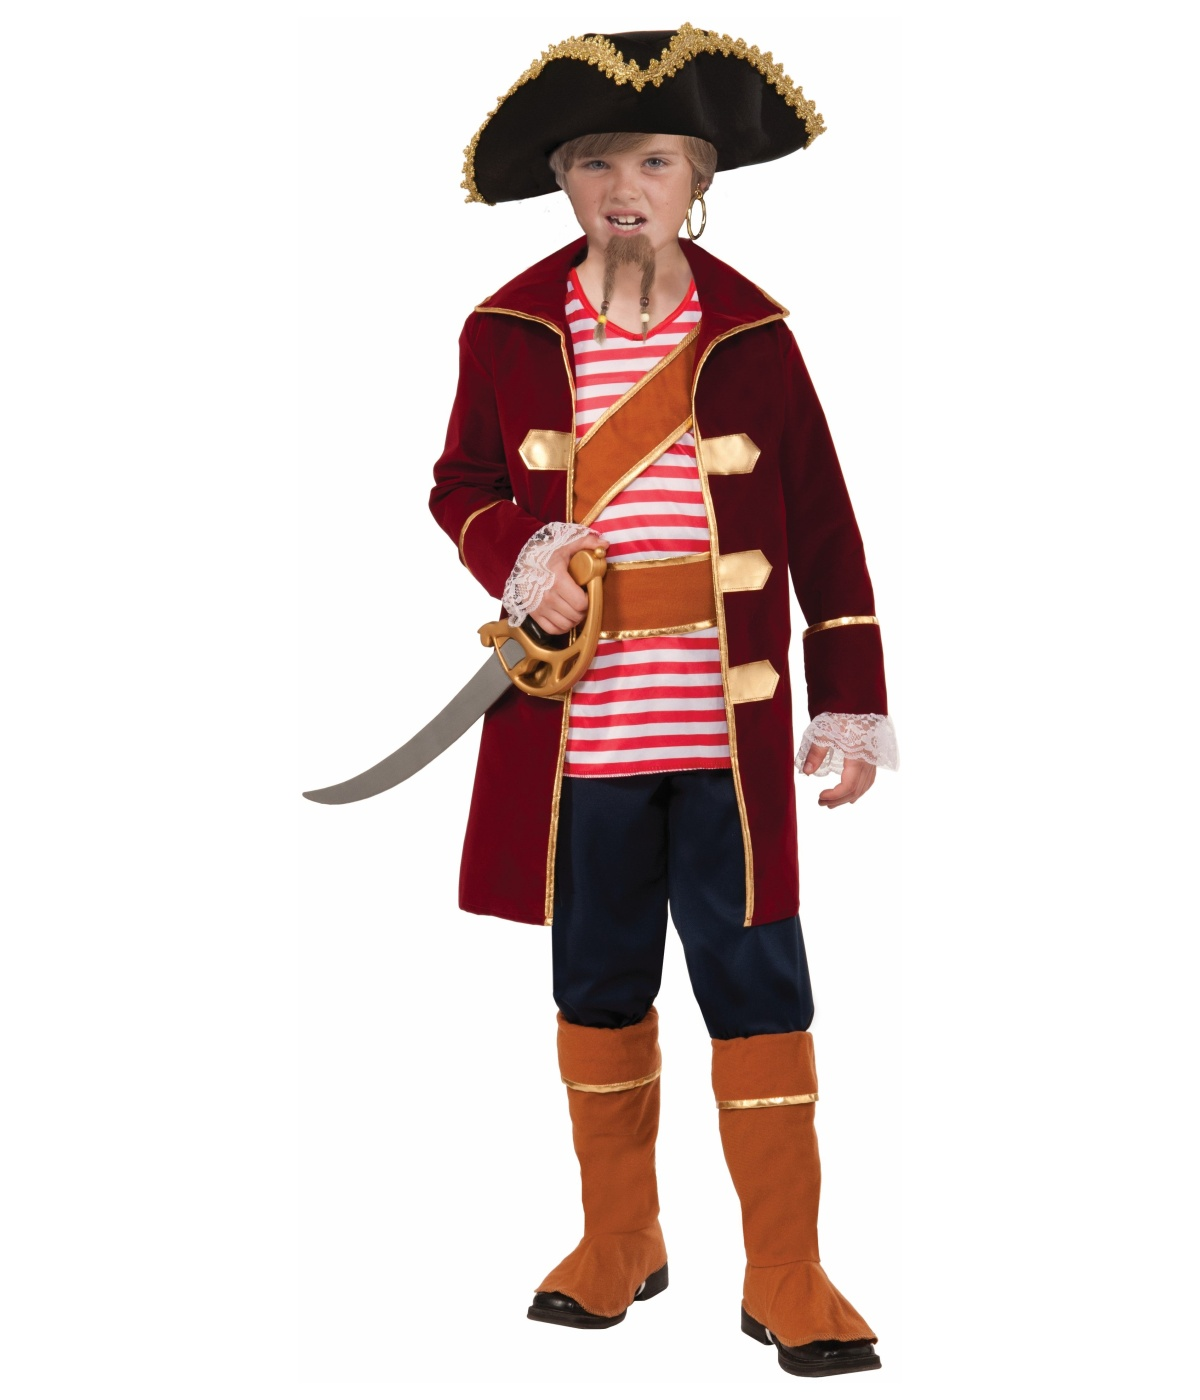 Captain of the Ship Pirate big Boys Costume by Forum Novelties